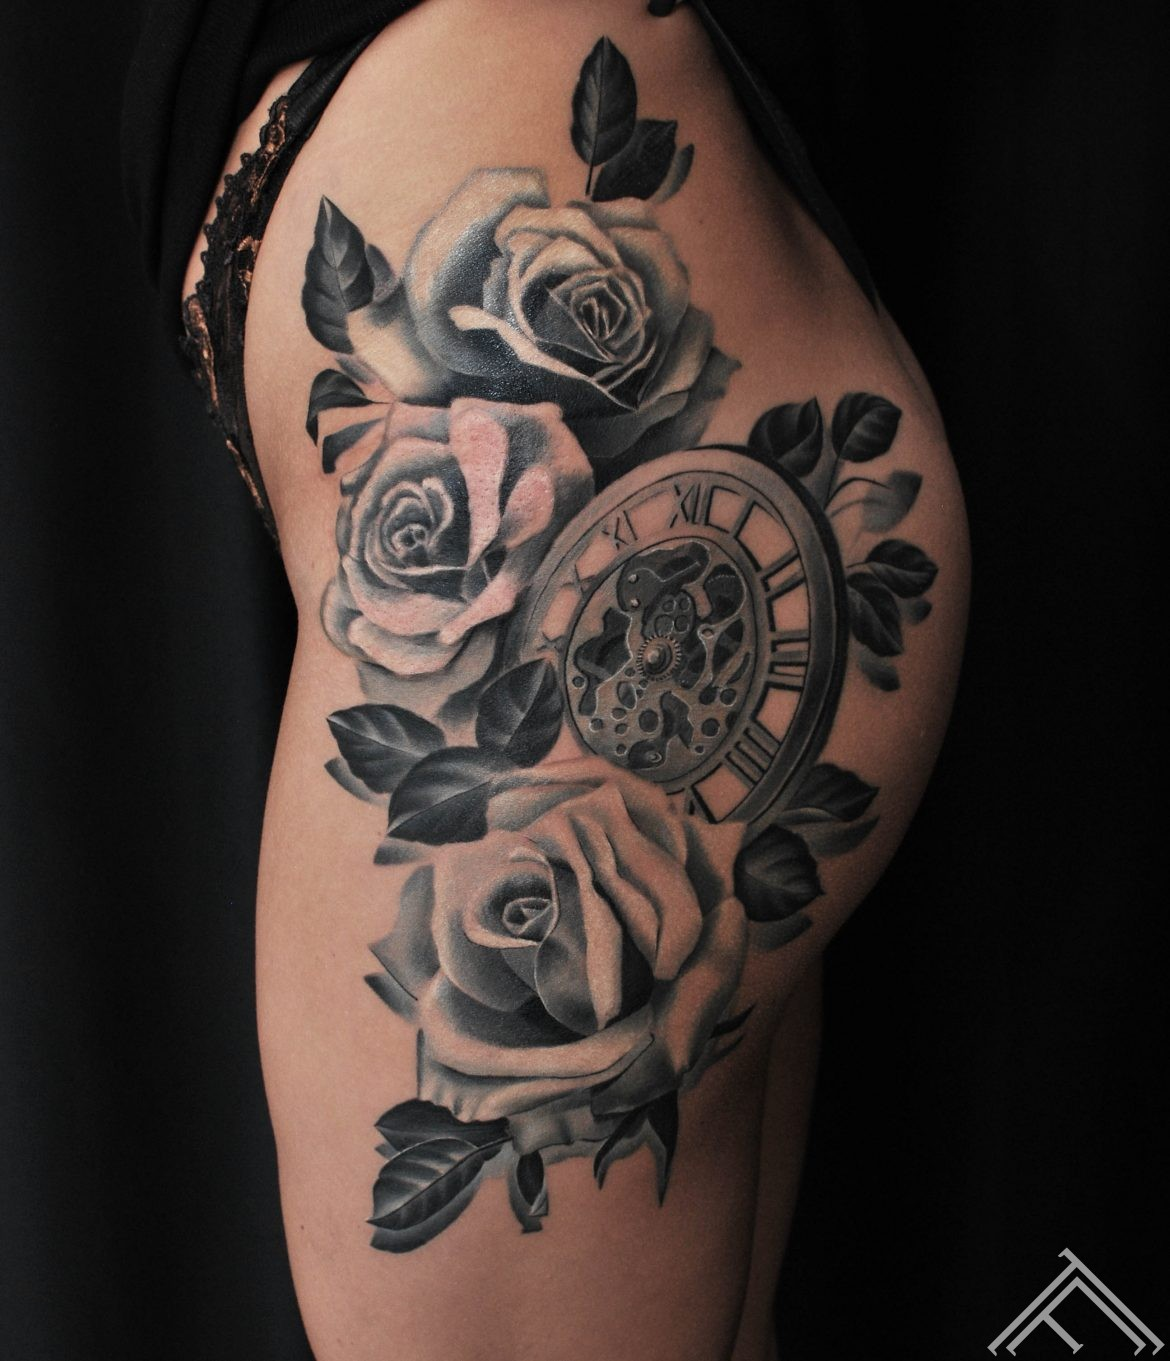 roses-clock-tattoo-tattoofrequency-janisanderson-riga